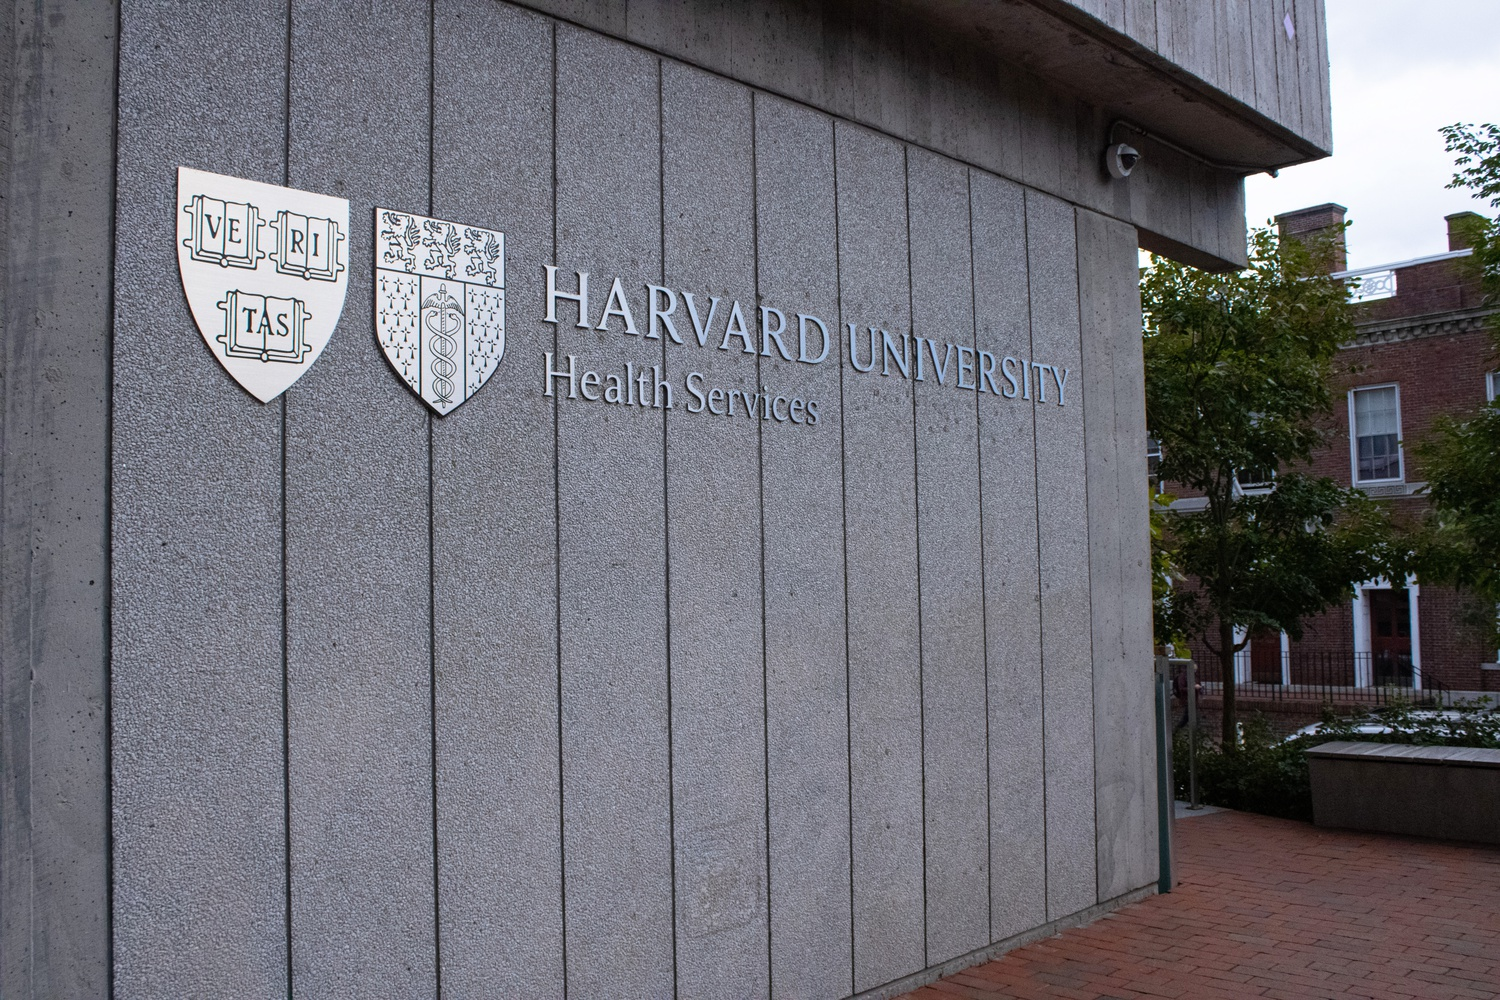 Harvard has begun administering the flu vaccine but said it is not providing Covid-19 booster shots in a Tuesday email.